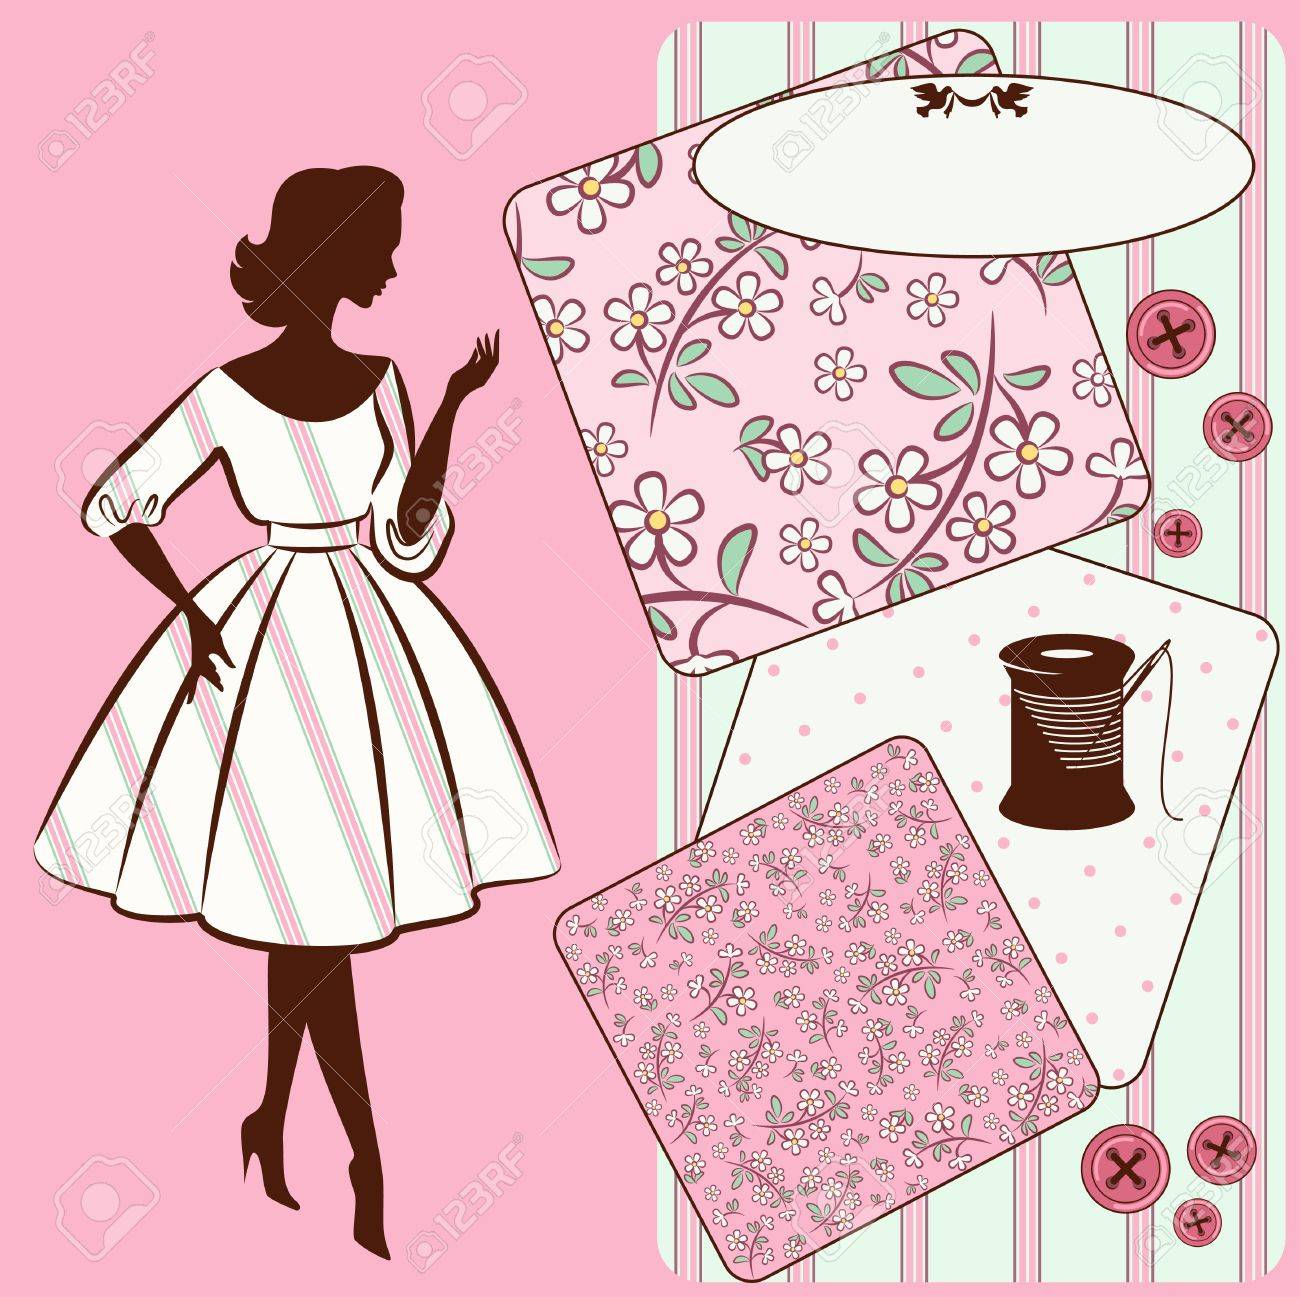 Vintage sewing elements with woman s silhouette on the background Stock Photo - 16966721